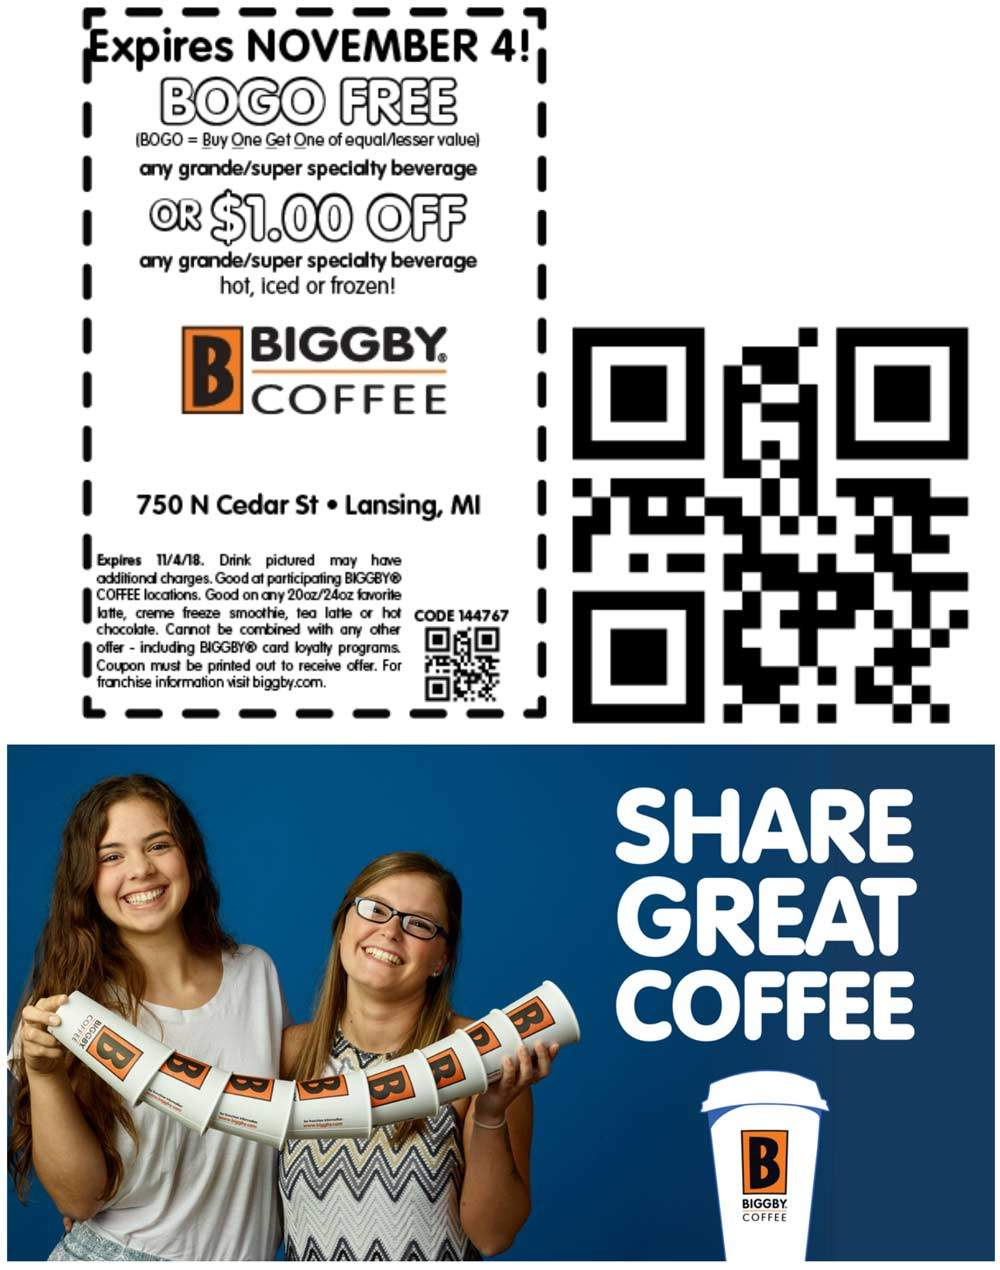 Biggby Coffee Coupon January 2020 Second beverage free today at Biggby Coffee